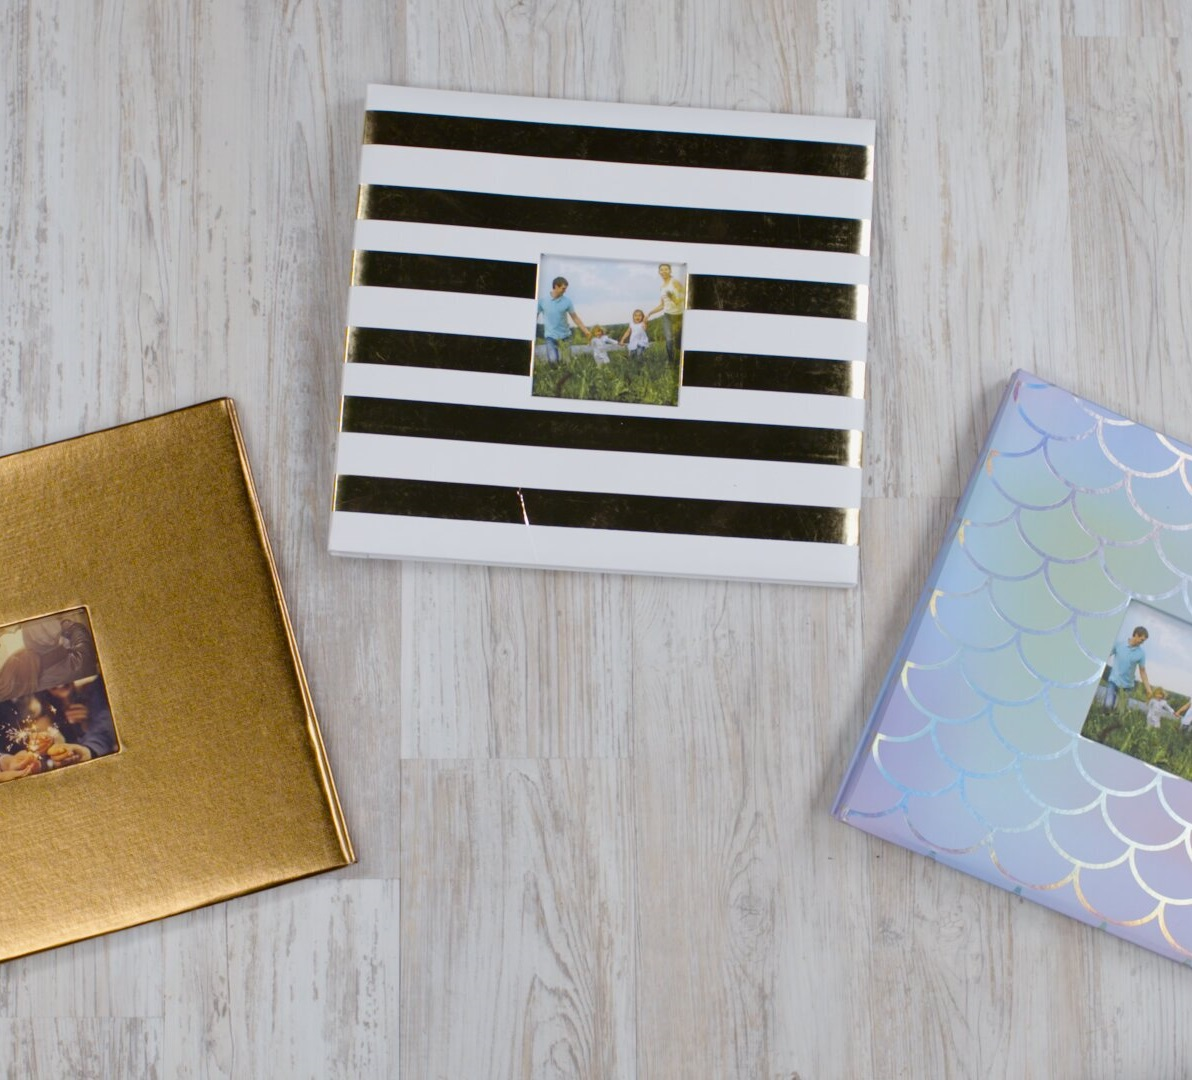 Find The Right Scrapbooking Album